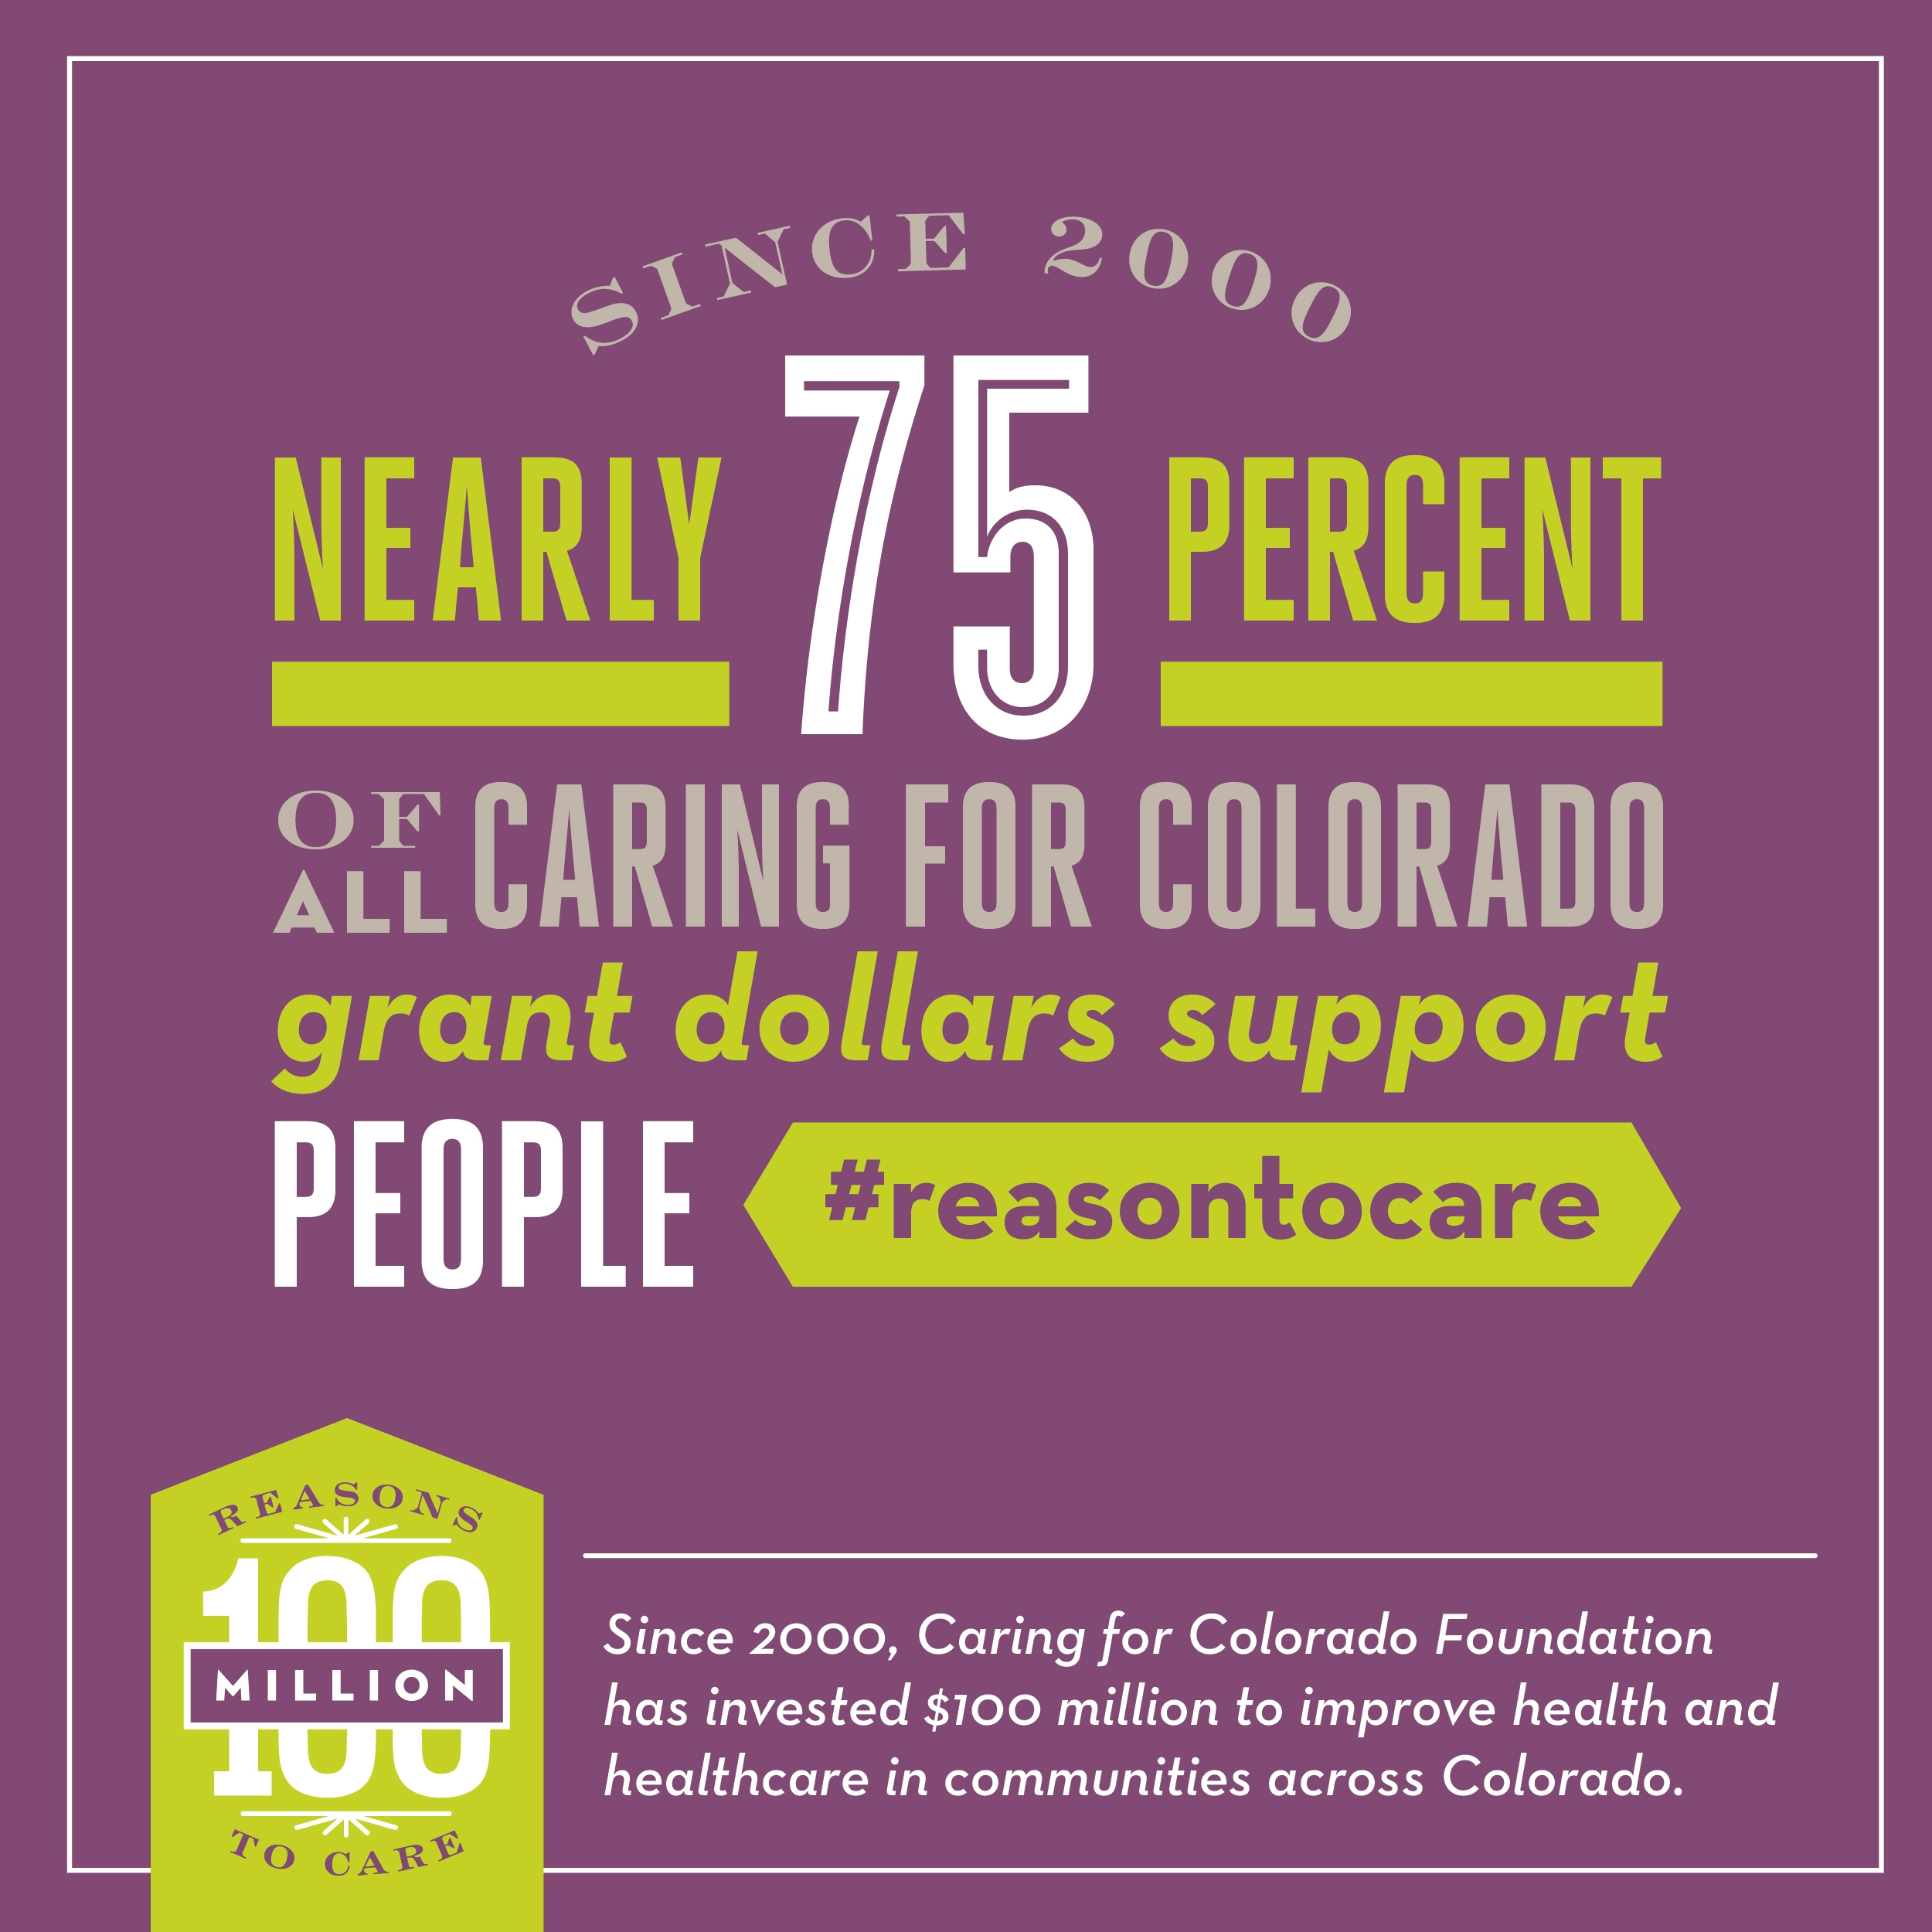 Caring for Colorado infographic